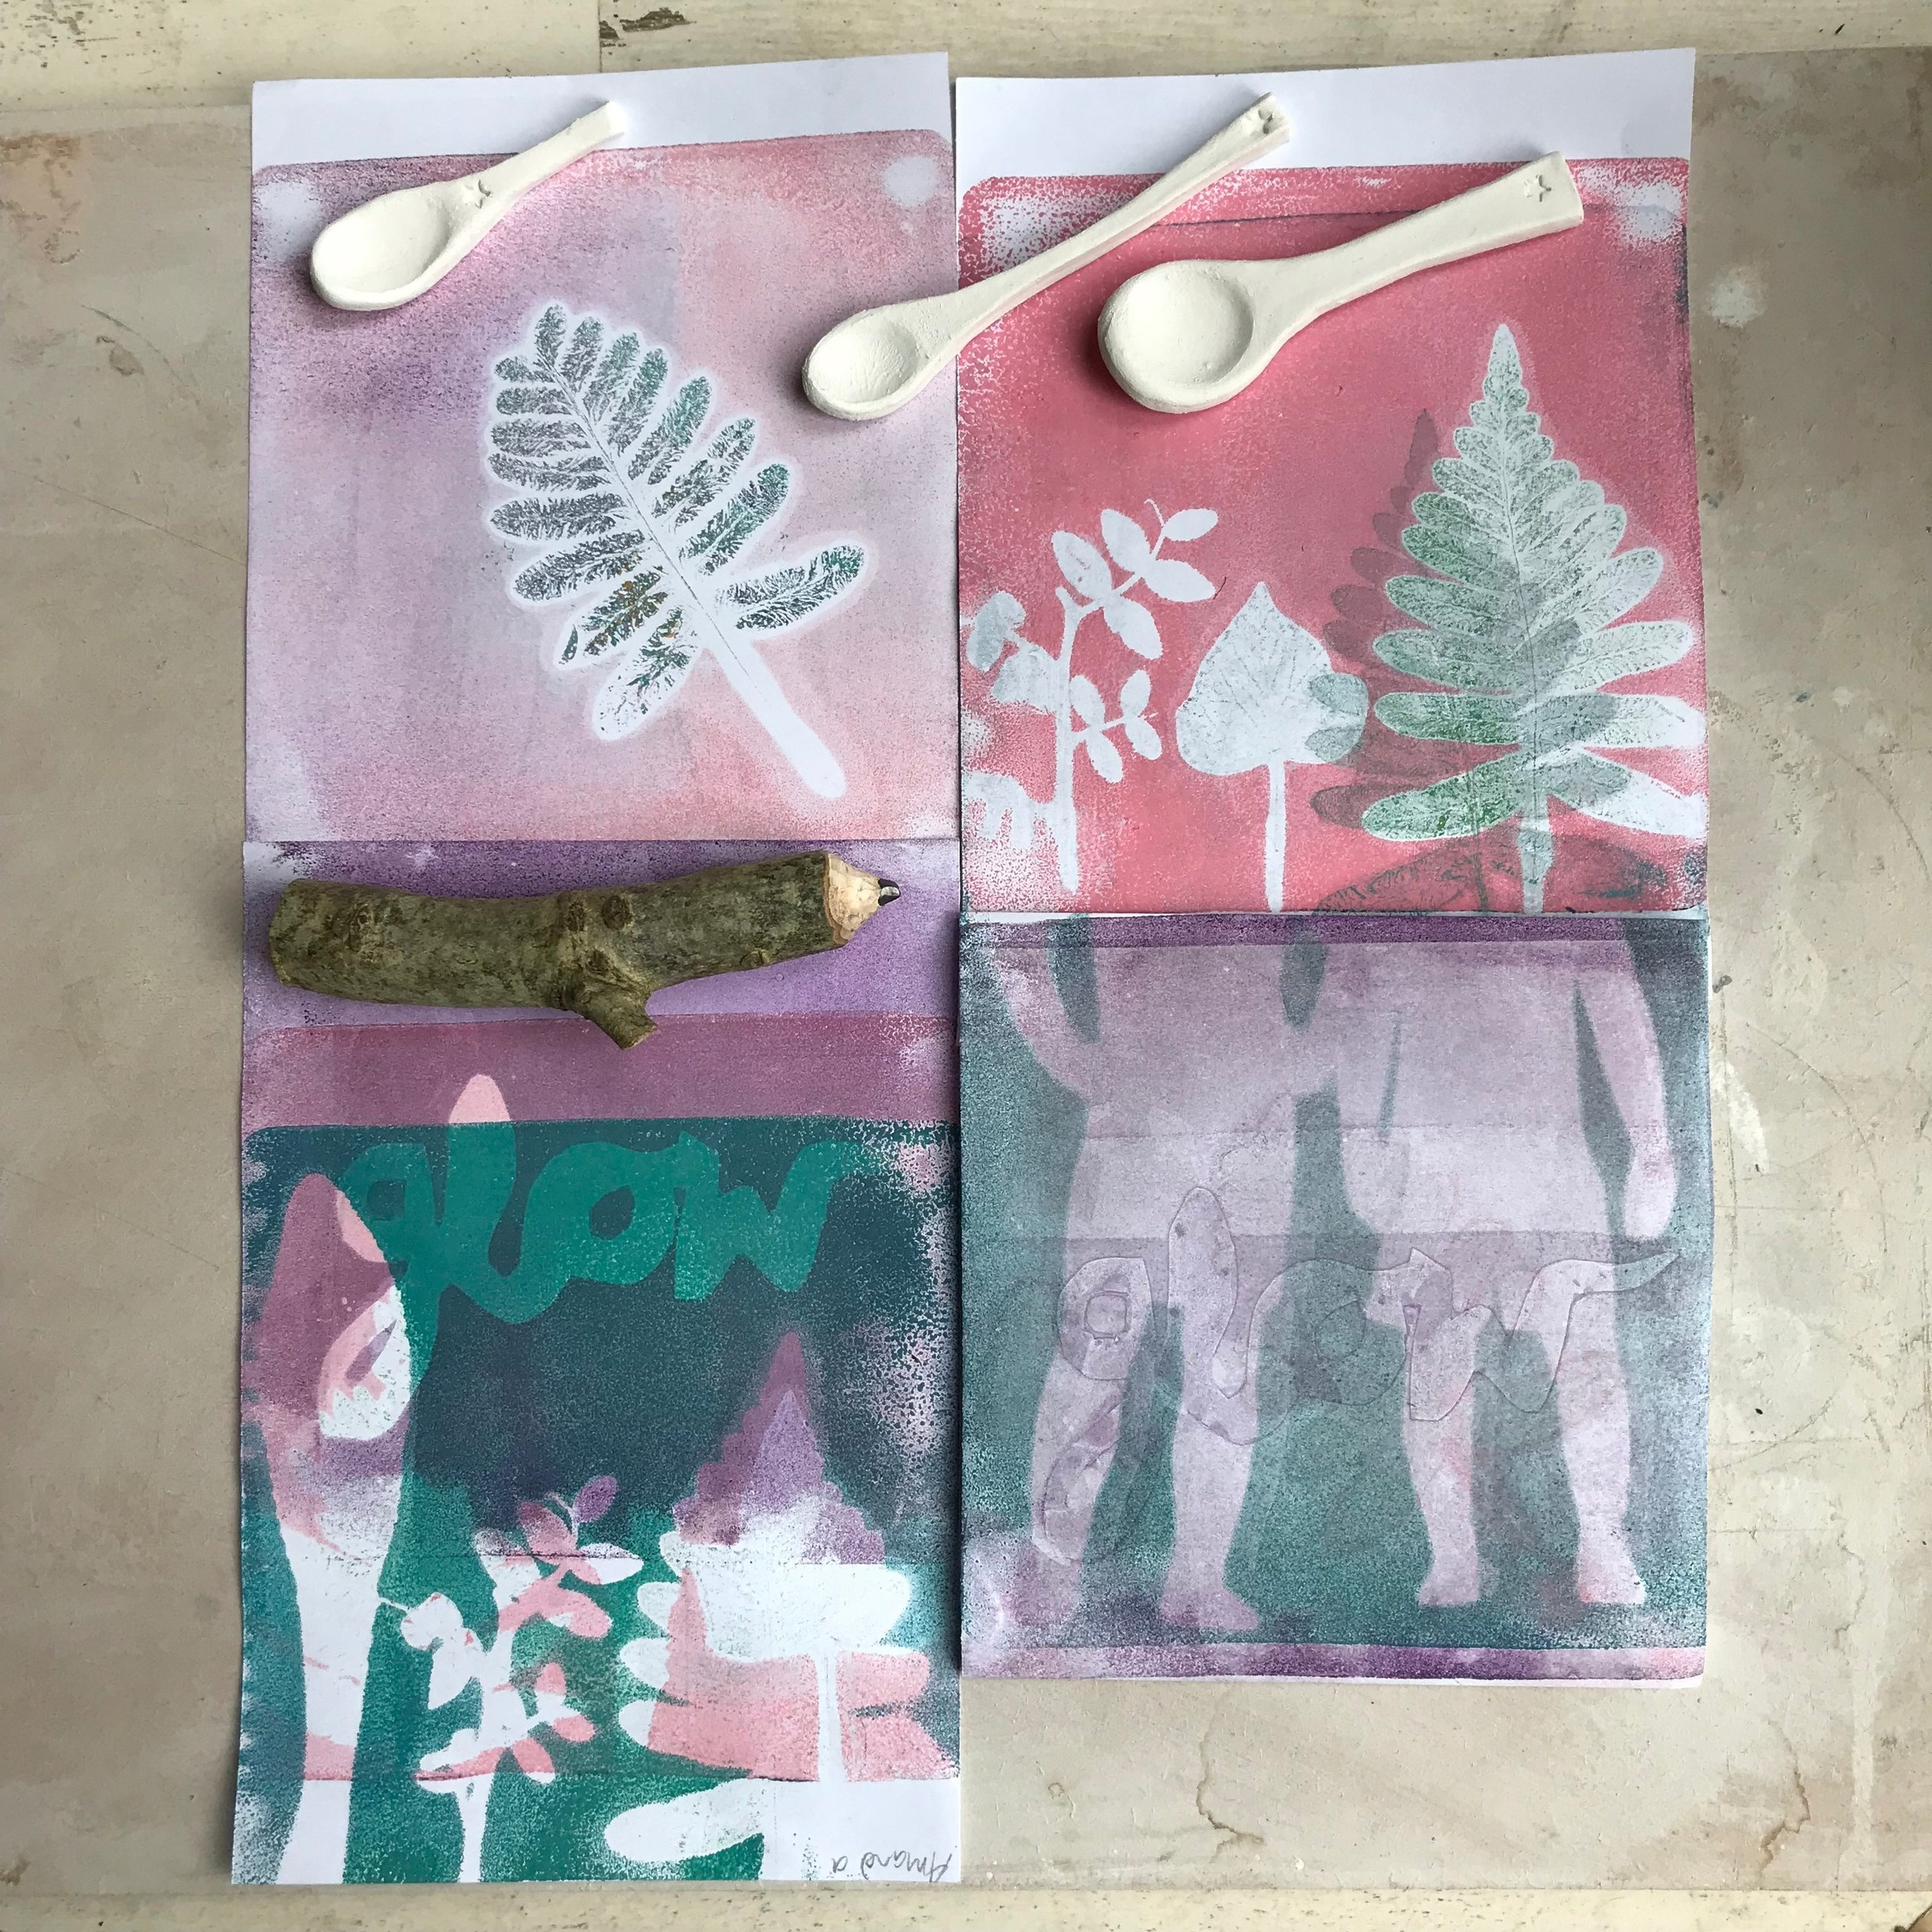 Workshops in Printmaking with Kathy Hutton and Ceramic Spoons with Katie Robbins.